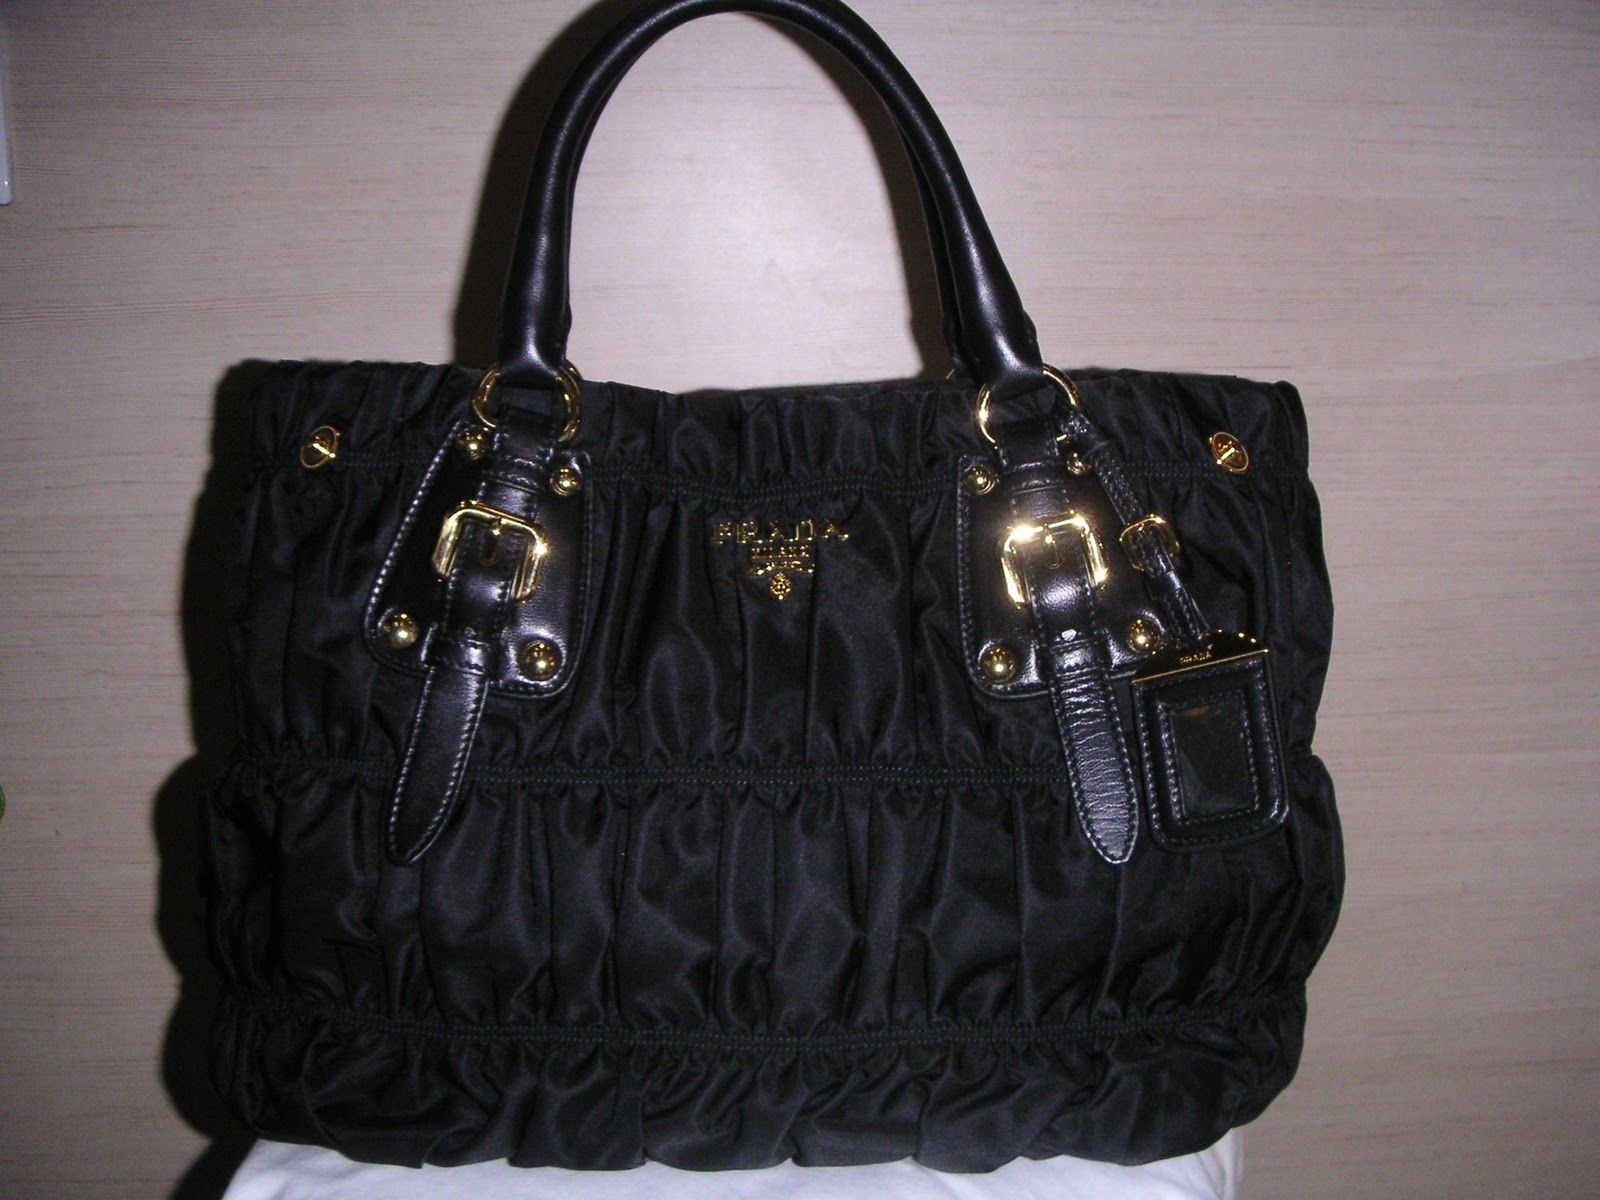 e47fea999614 ... hot selling this very popular bag prada bn1792 tessuto gaufre at s1900.  f59e5 32a98